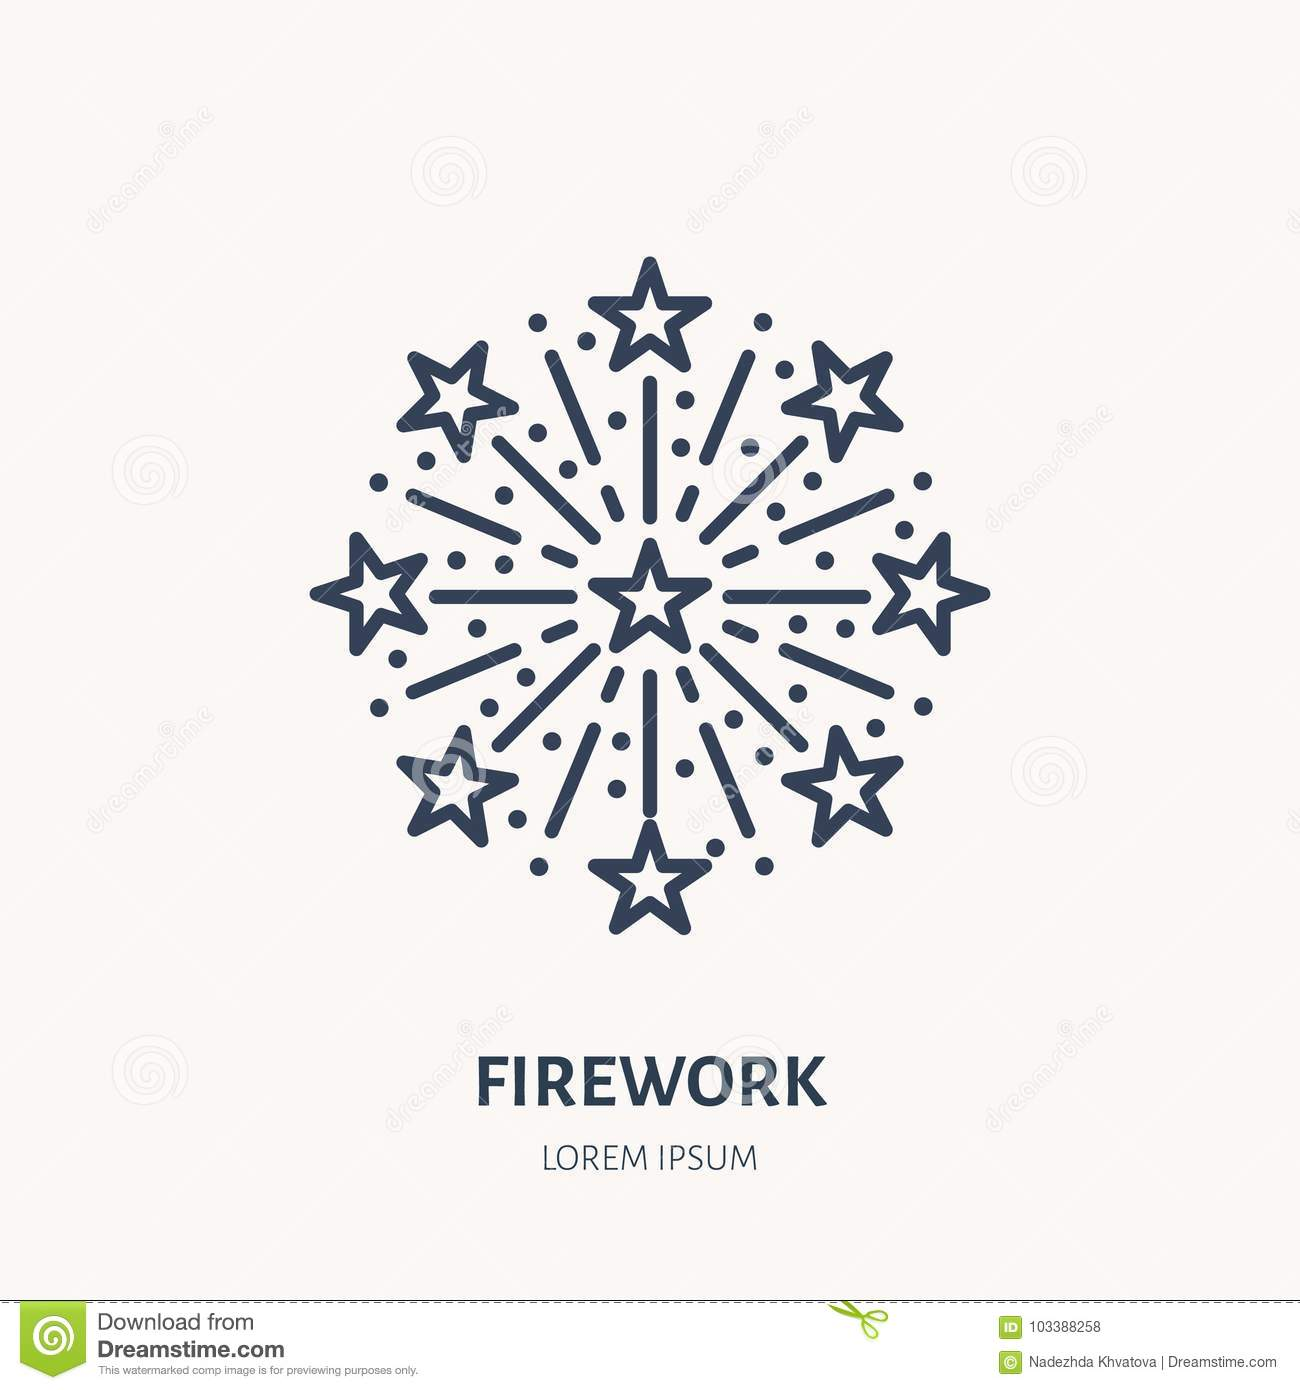 Fireworks line icon. Vector logo for event service. Linear illustration of new year firecrackers, salute